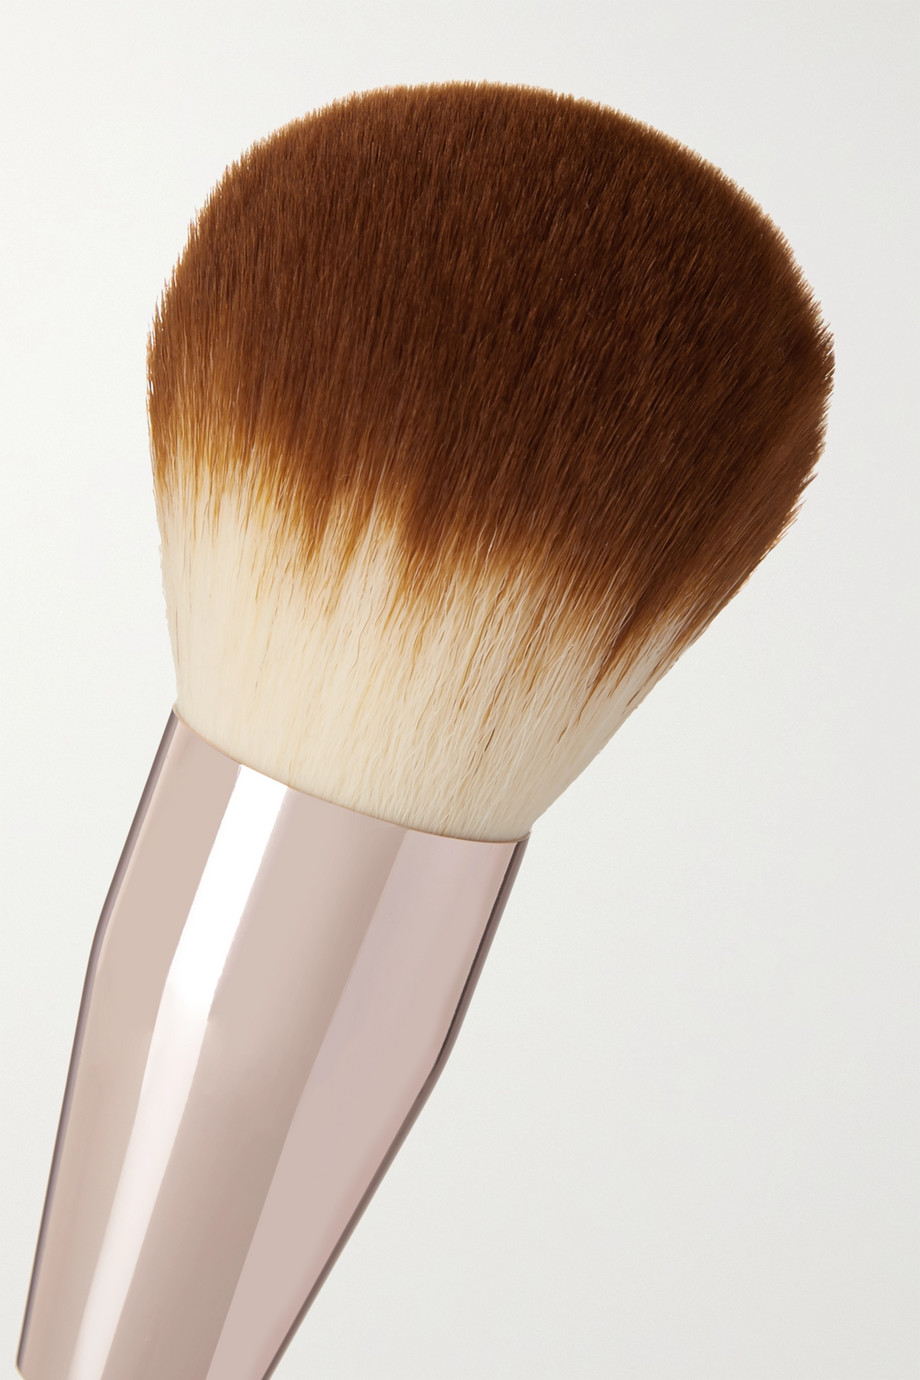 La Mer Powder Brush